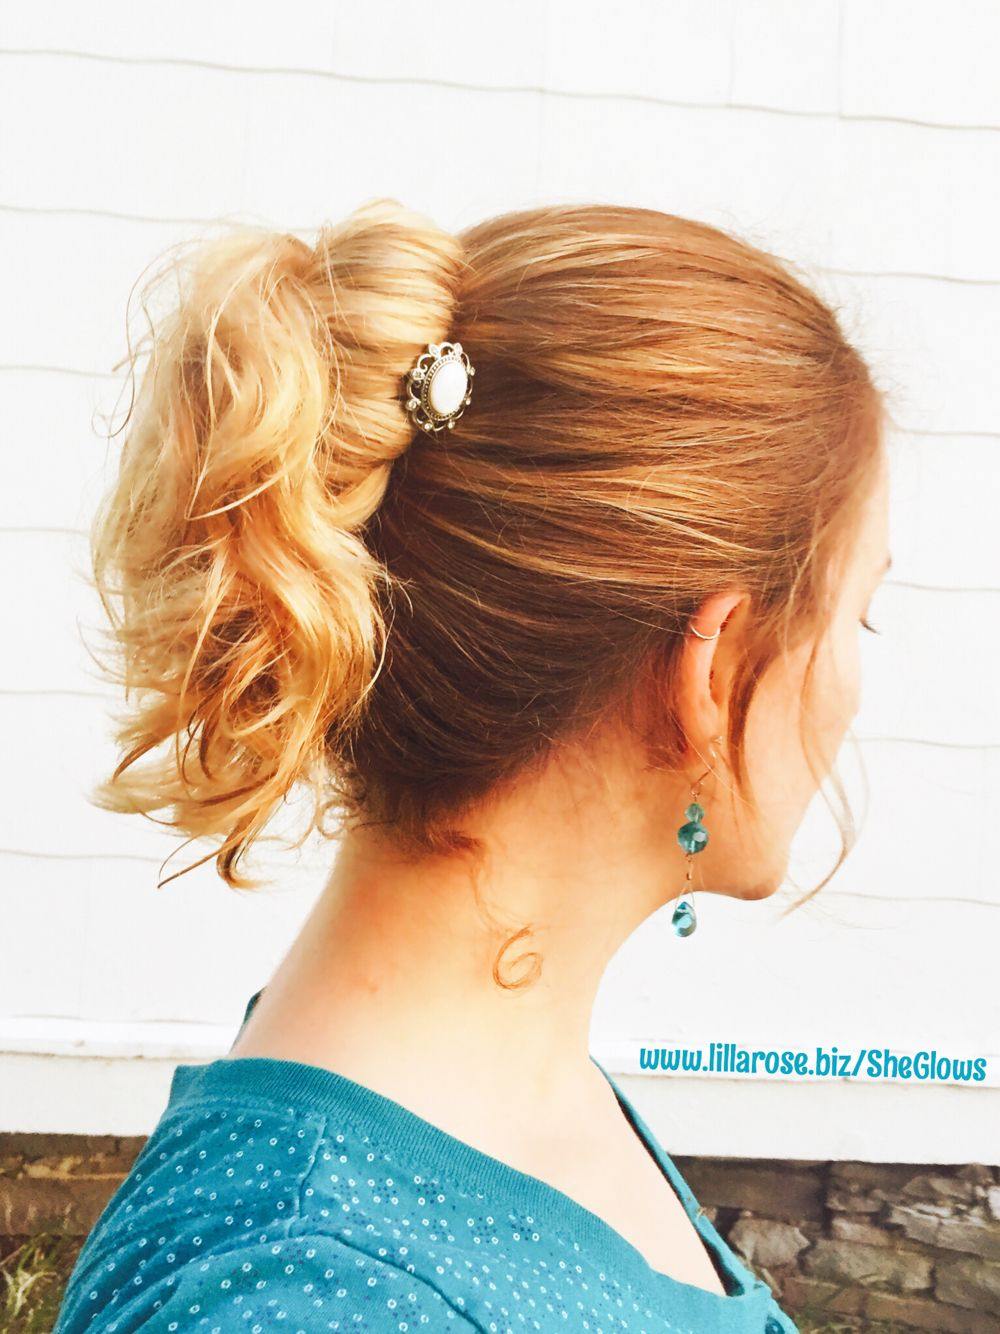 my favorite hairstyle! waist length hair in a knot bun with